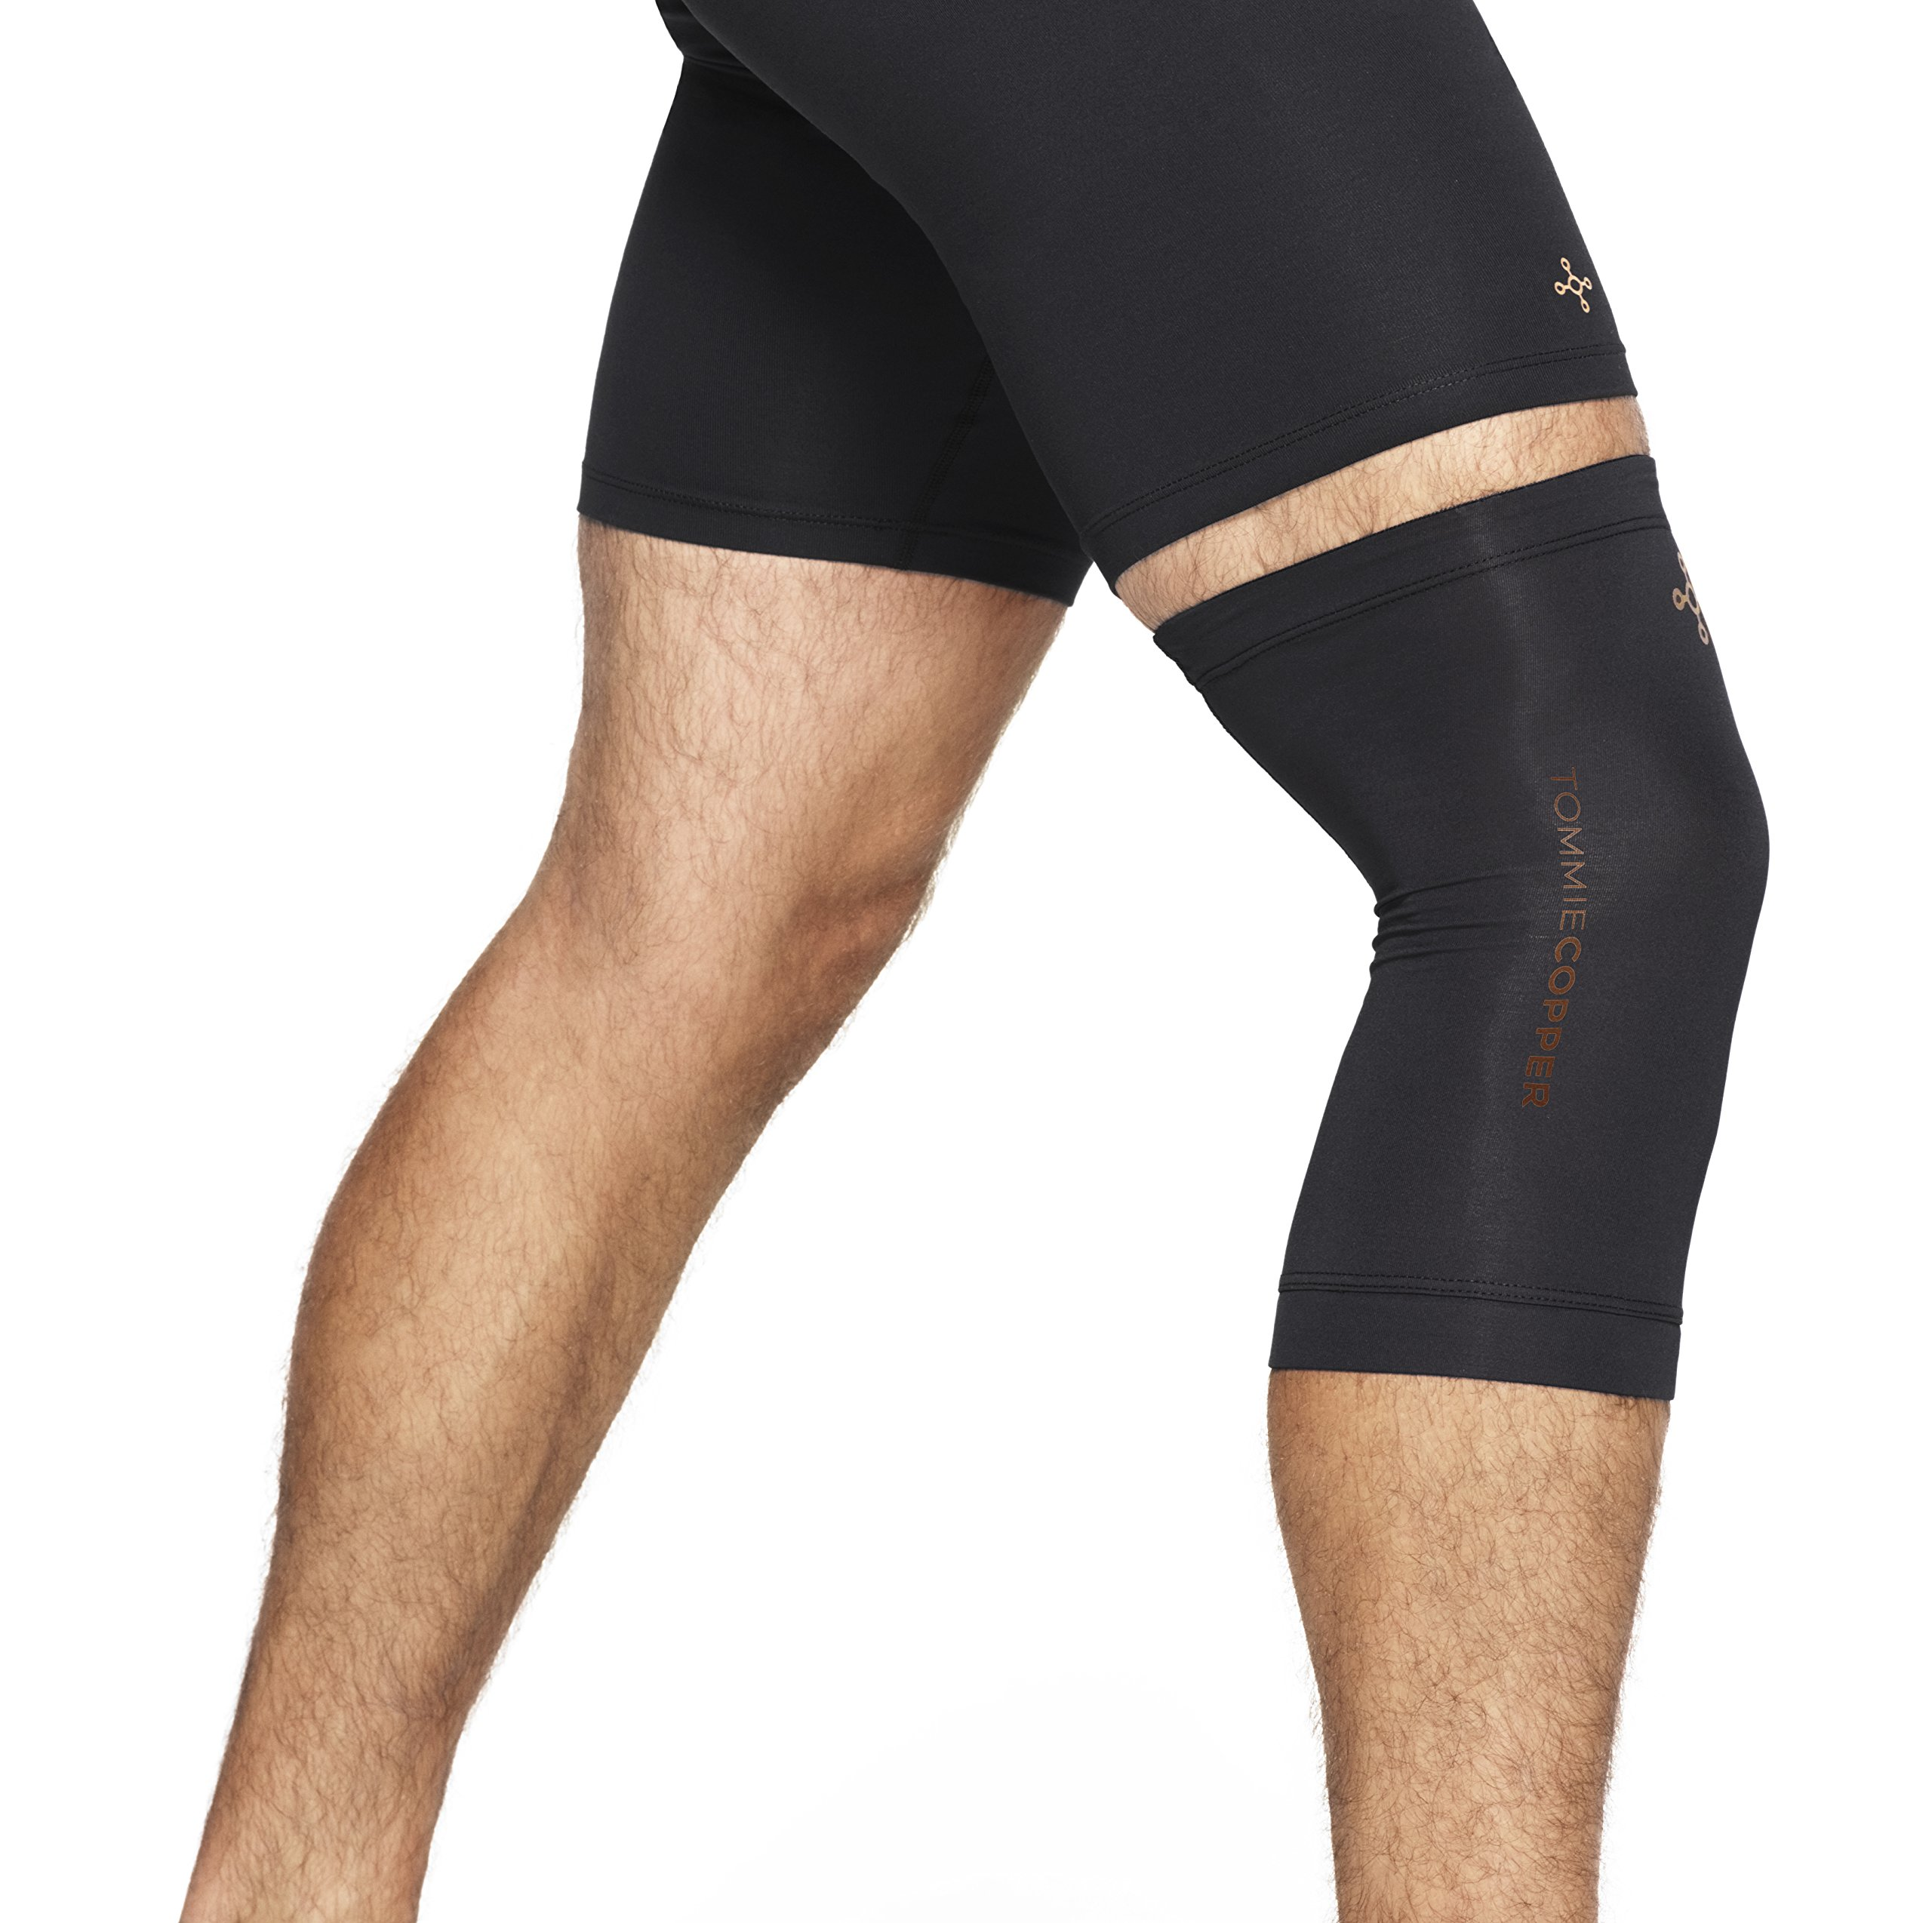 Tommie Copper - Unisex Compression Knee Sleeve - Black - X Large by Tommie Copper